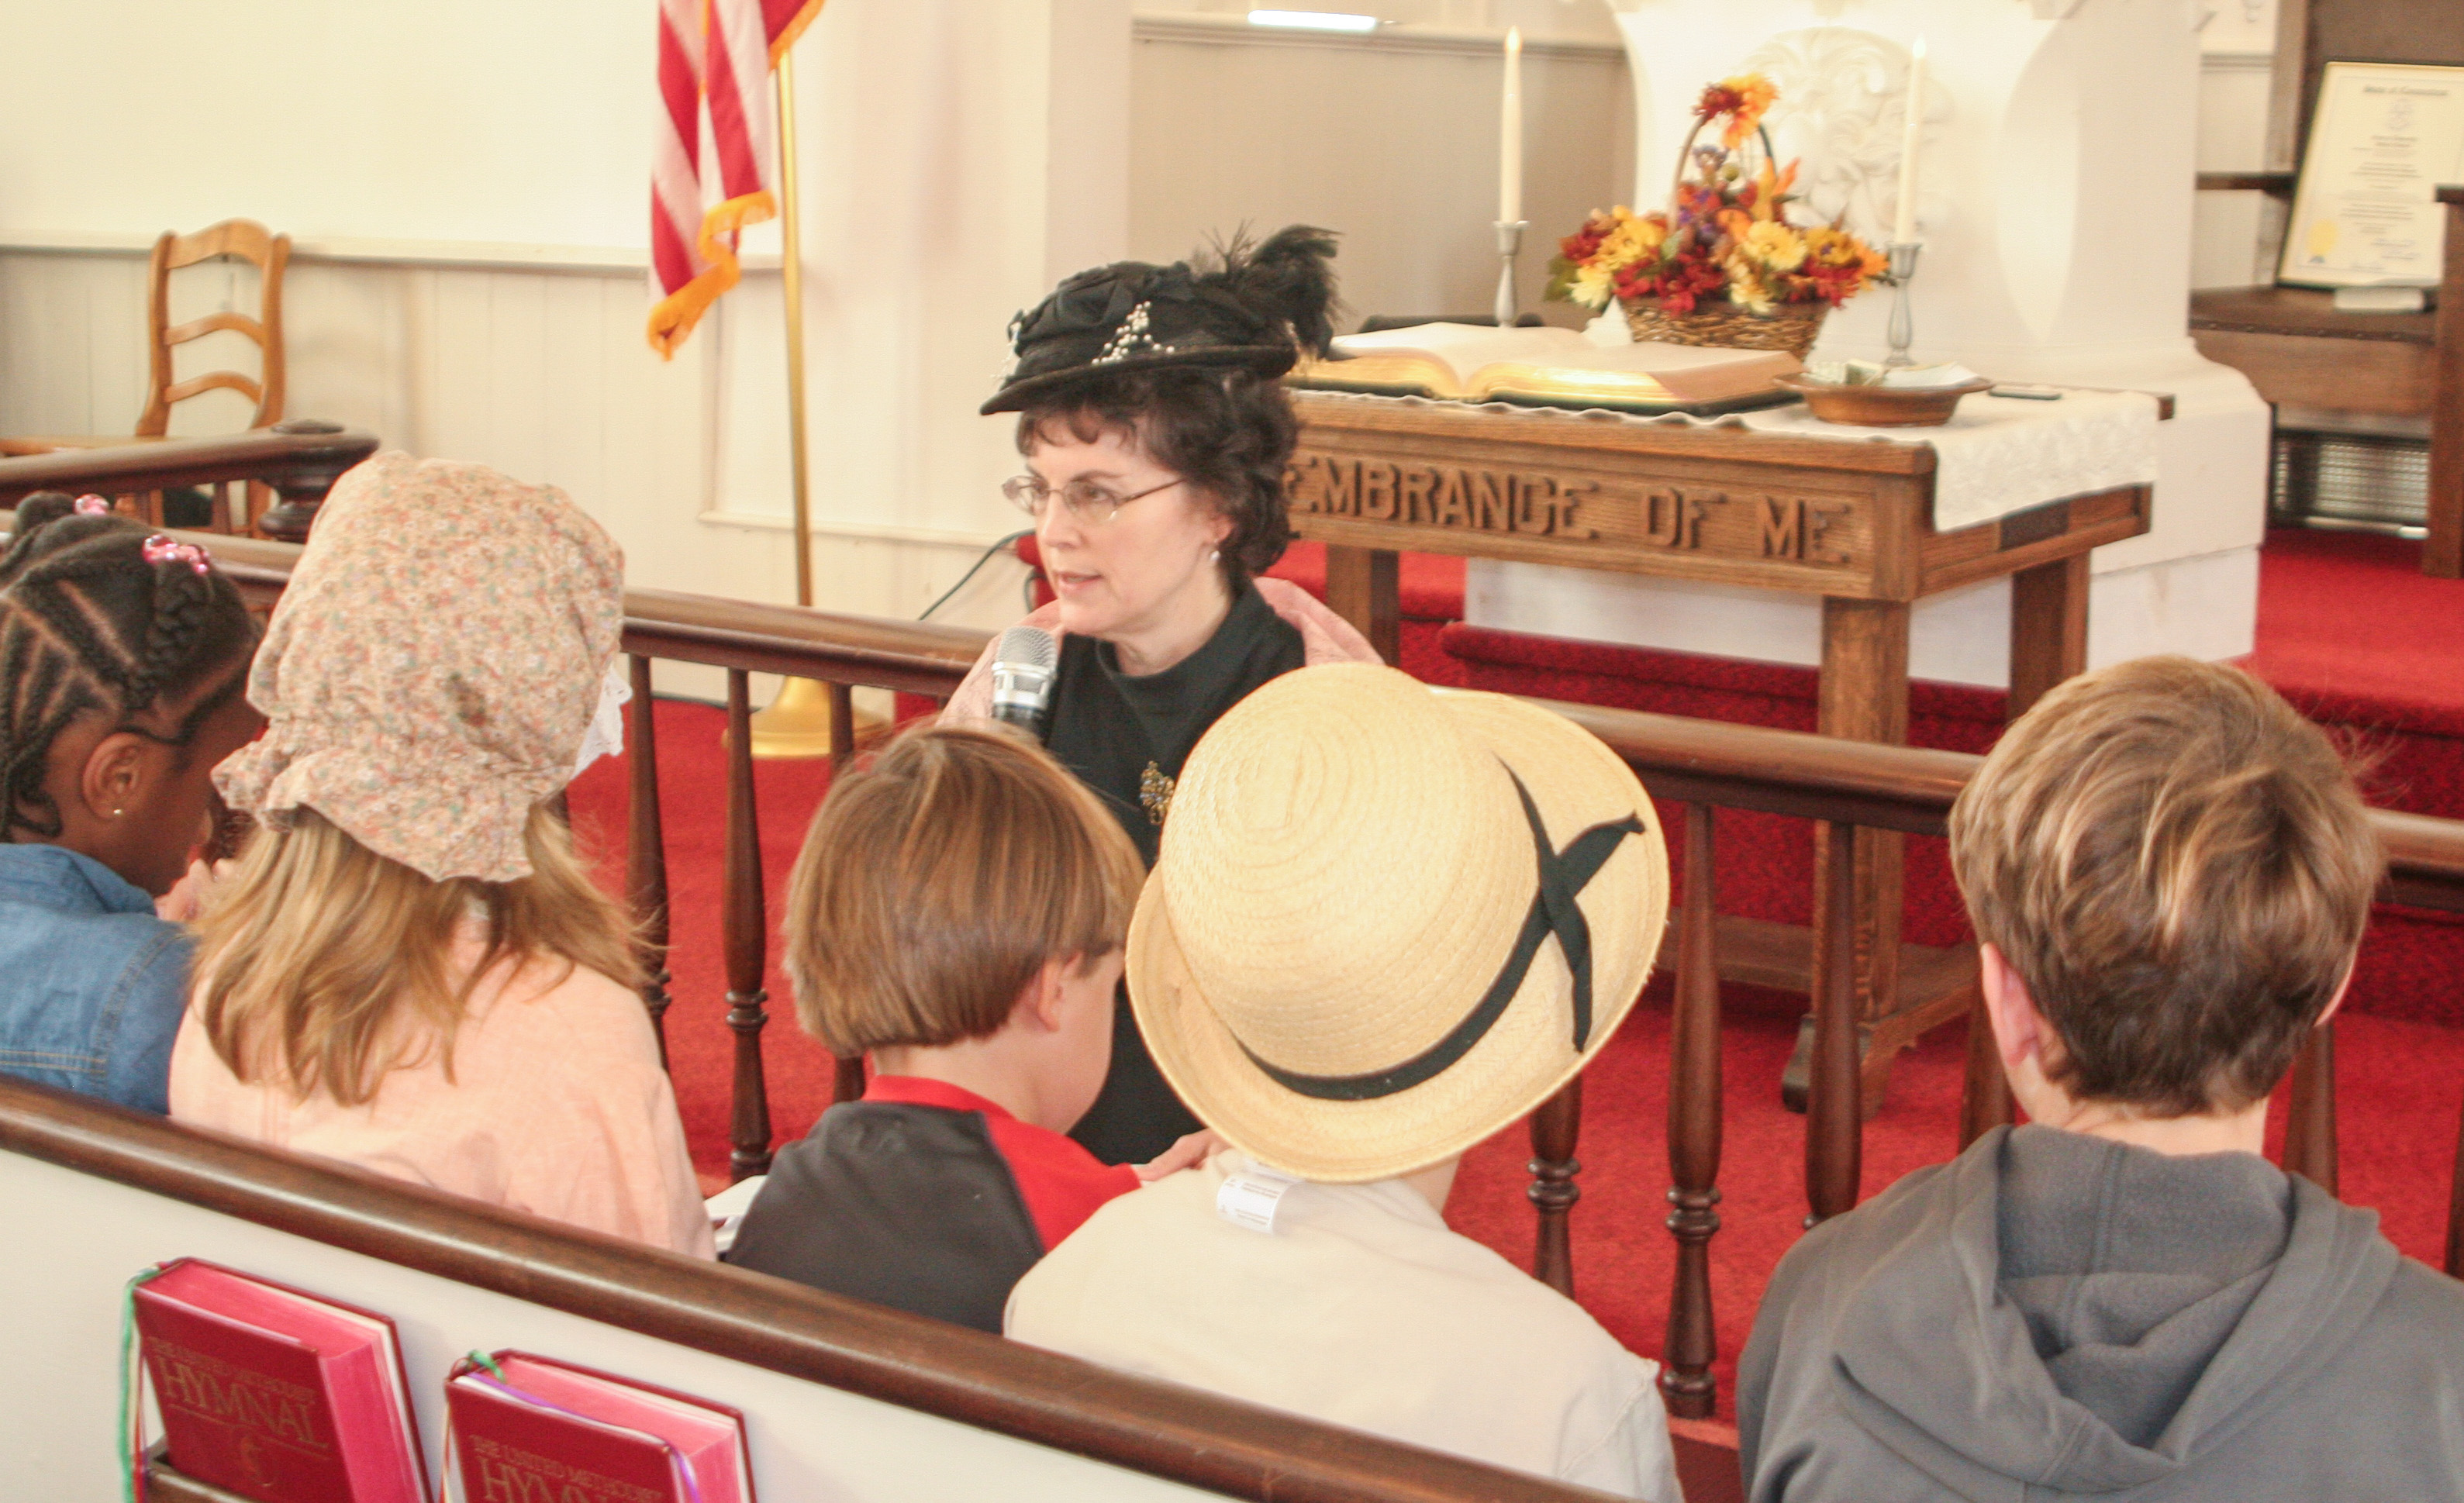 JoAnne leads children's church in costume